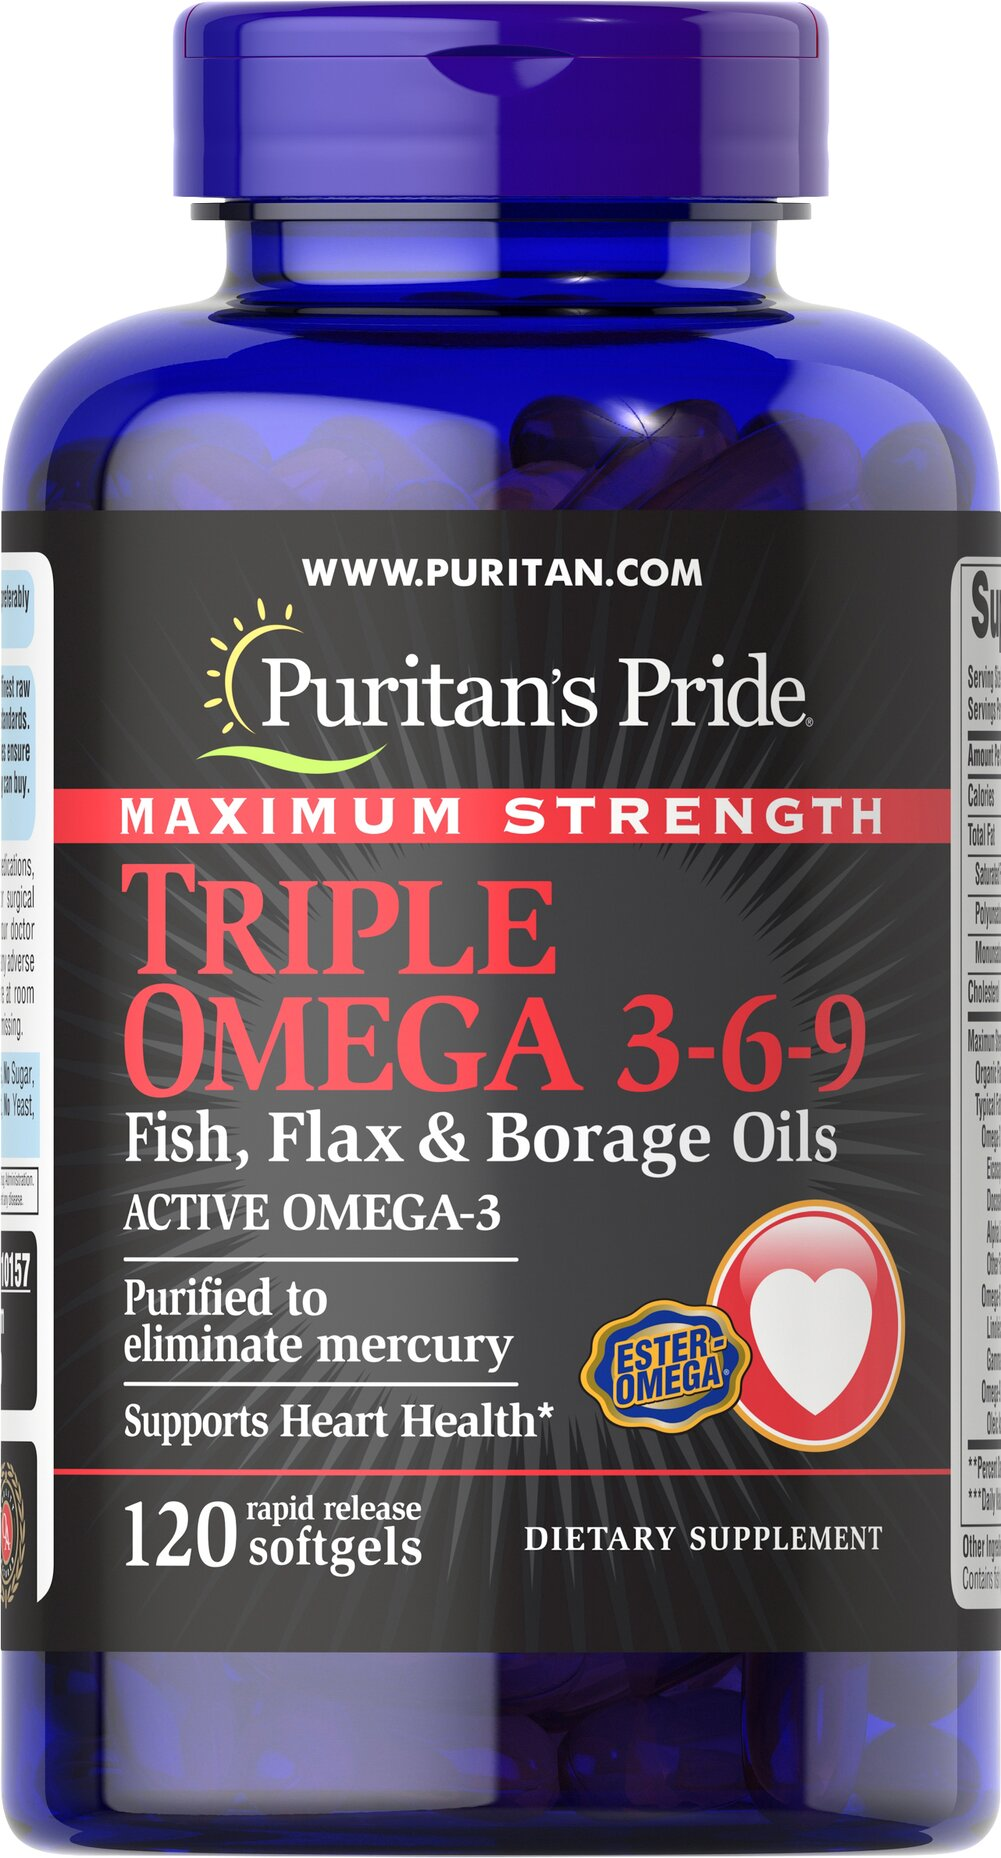 Maximum Strength Triple Omega 3-6-9 Fish, Flax & Borage Oils